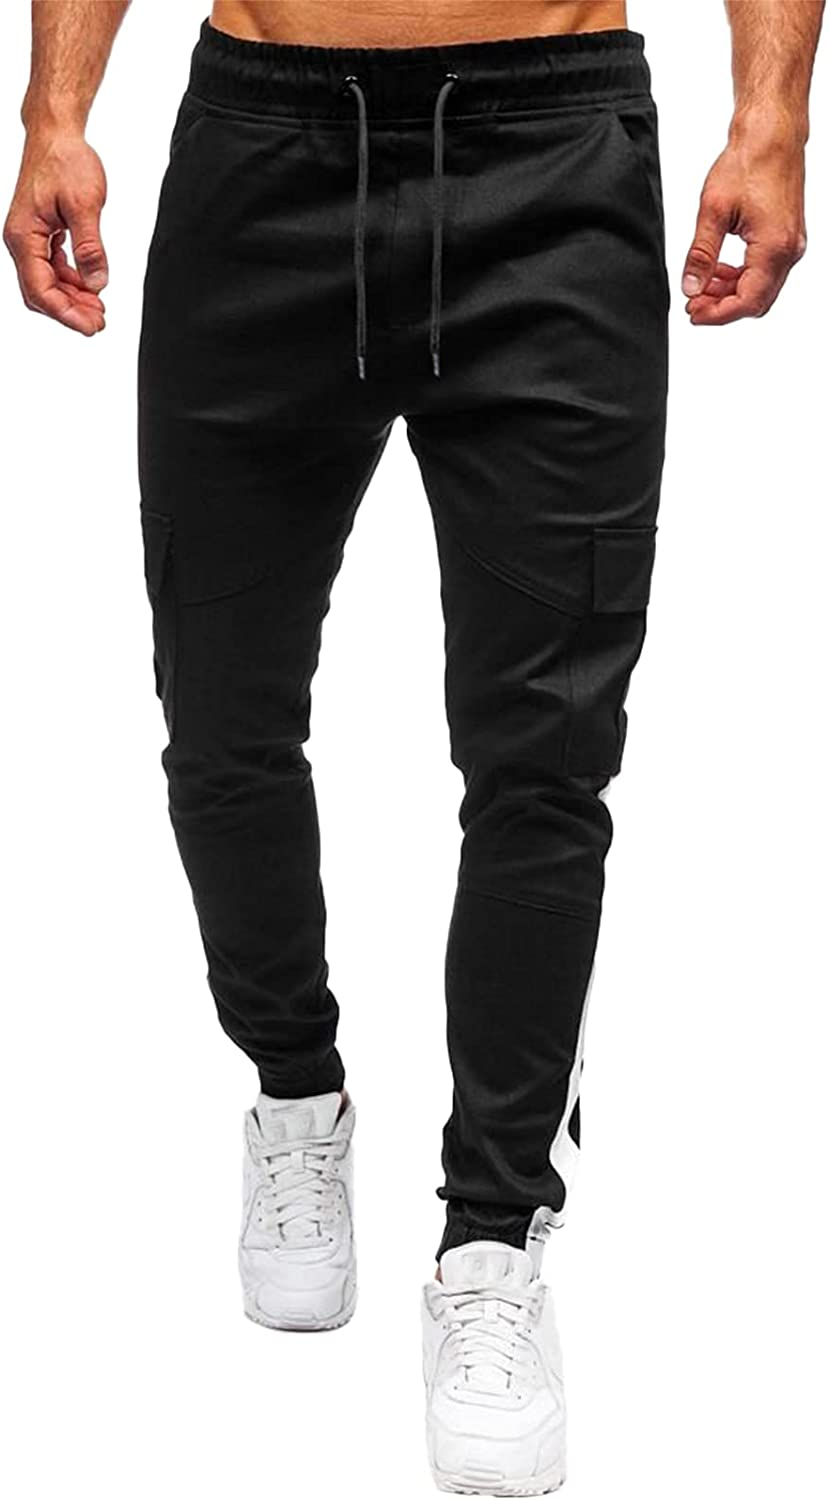 SAMACHICA Men's Casual Cargo Pants Jogger Slim Fit Fashion Work Hip Hop Drawstring Athletic Pants with Pockets